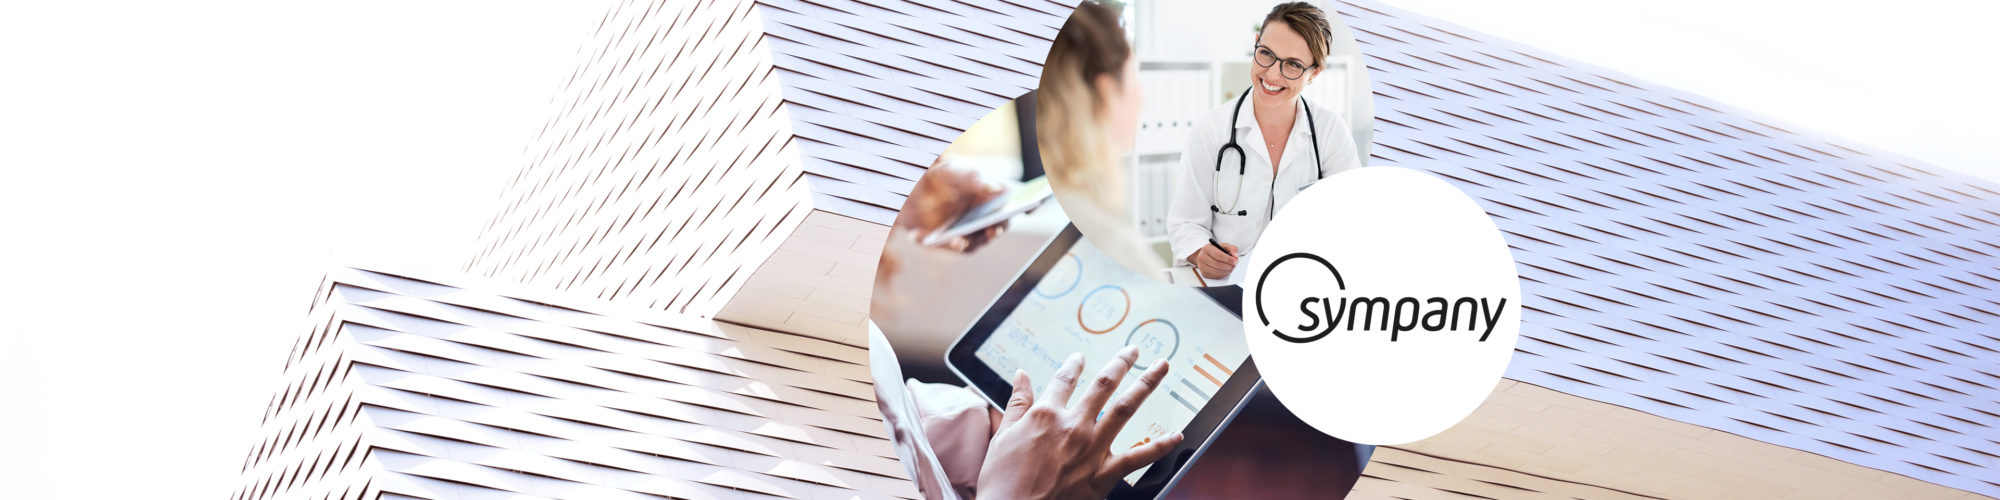 The image shows a triad for the Sympany success story, consisting of the logo, a tablet with analytics reports and a doctor-patient conversation.